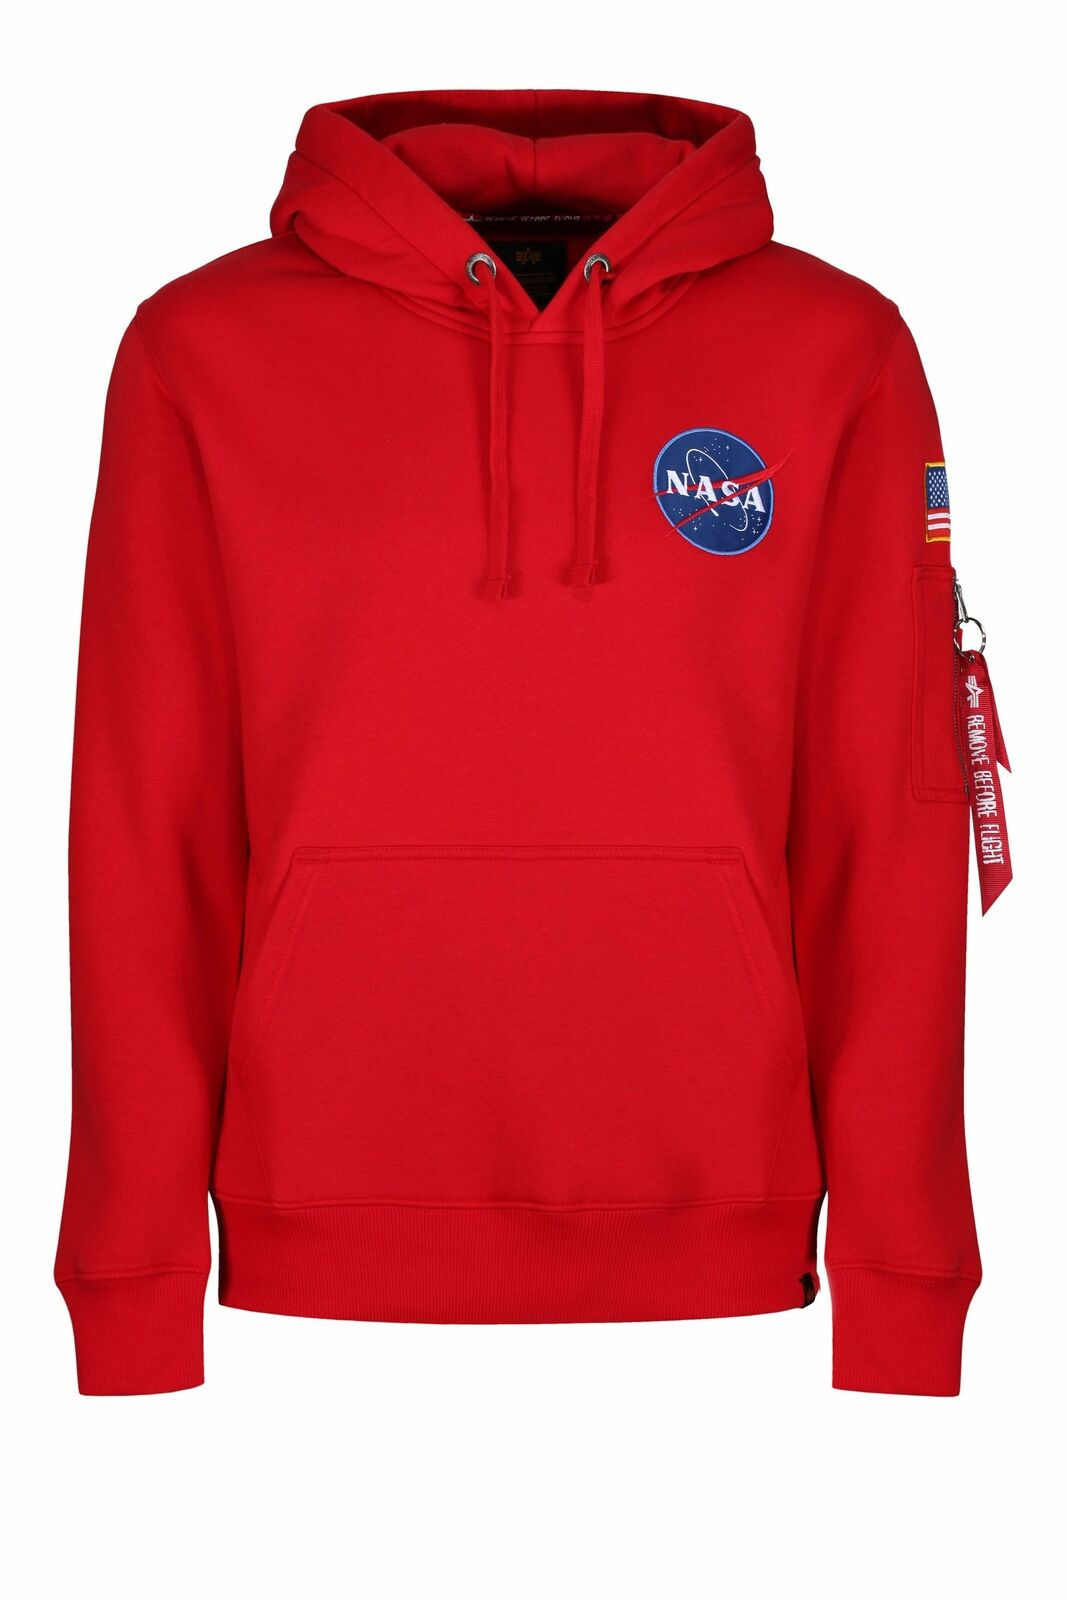 Mens Hoody ALPHA INDUSTRIES Limited Edition Space Shuttle OTH Hoodie | Speed Red